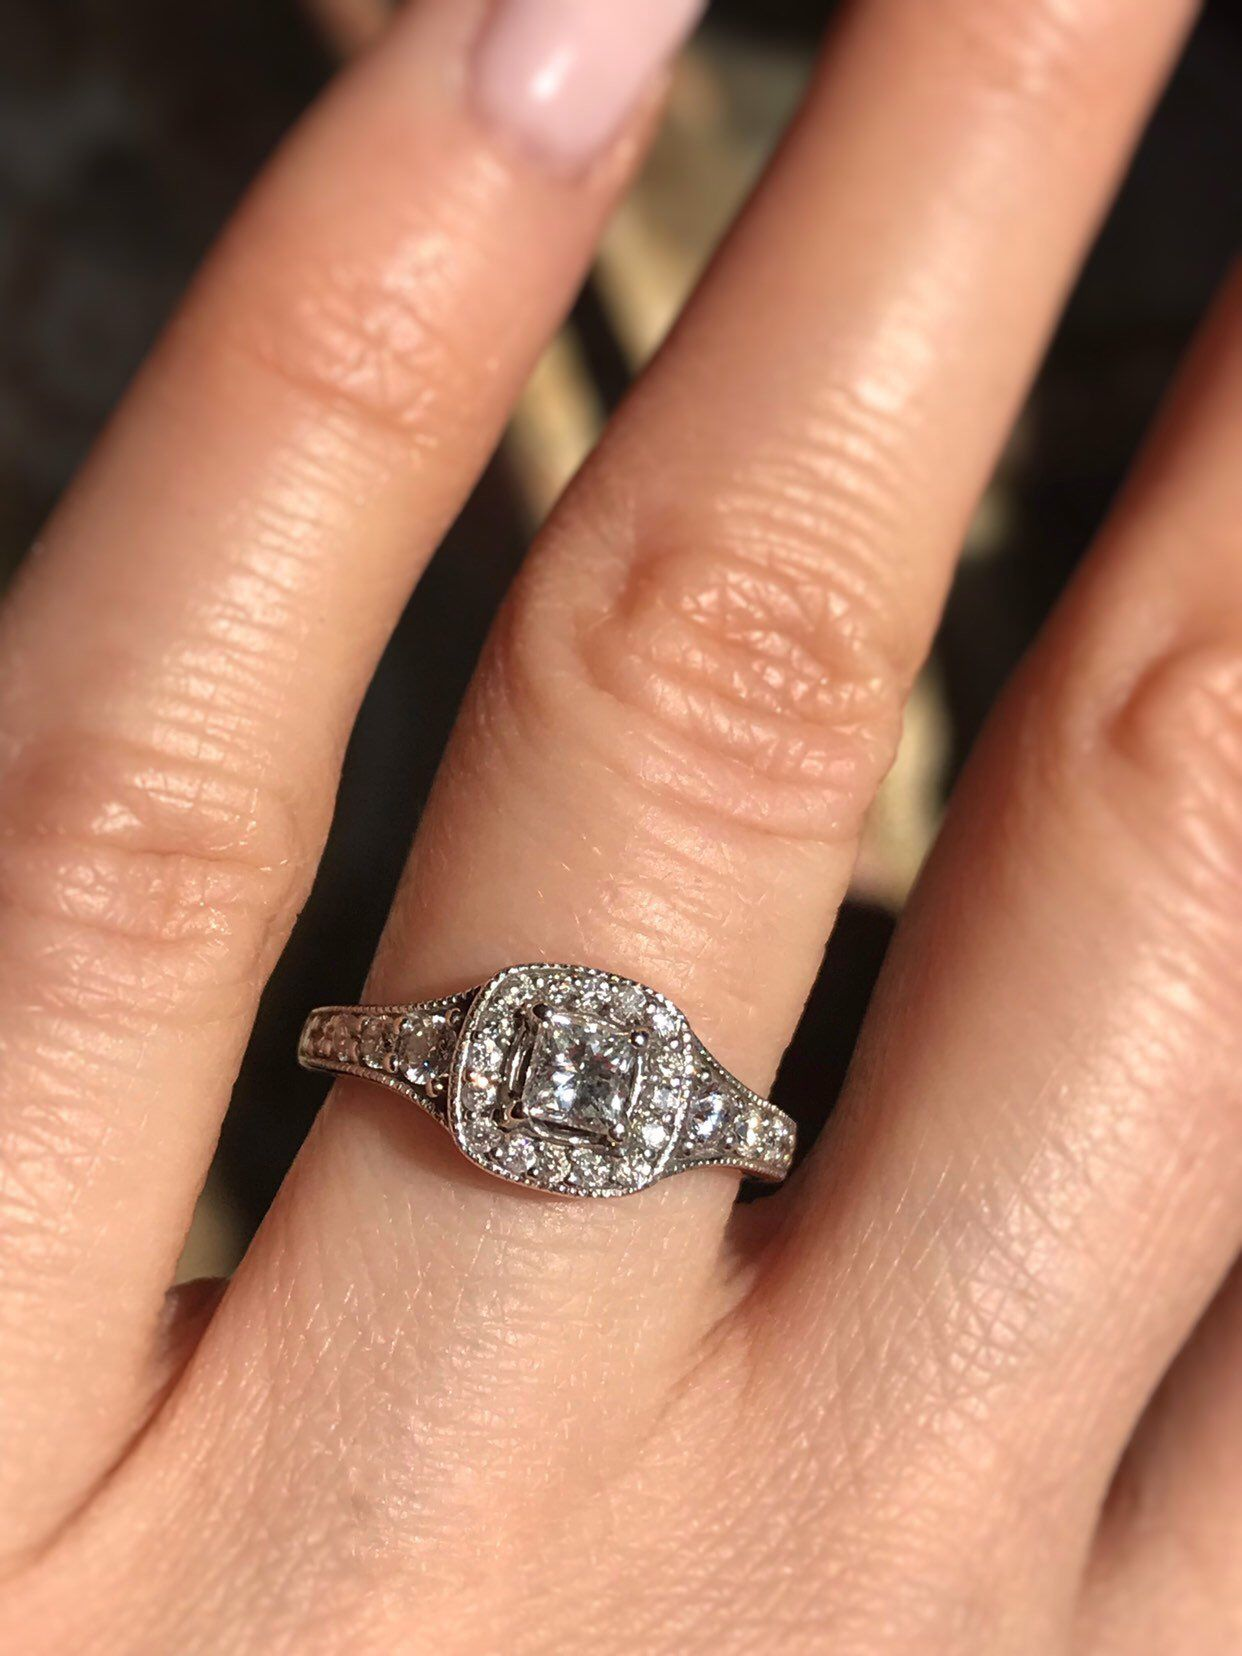 5fb8ad16d5330 About 0.80 carat Diamond Engagement ring. Offering layaway in 2019 ...